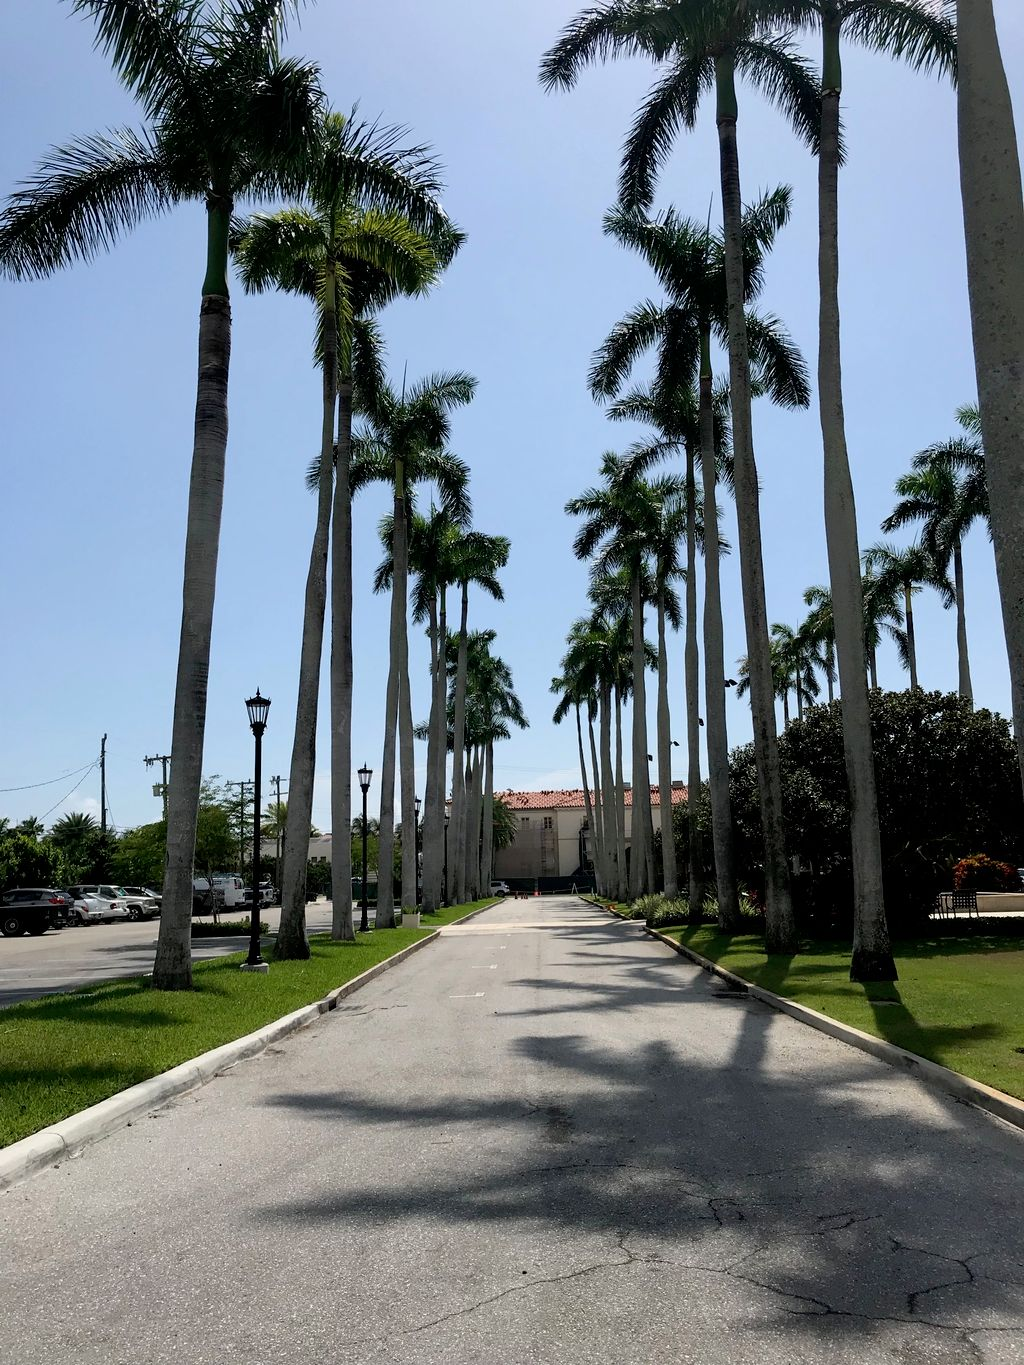 Museum entrance Multiple Tall Royal Palms at entrance